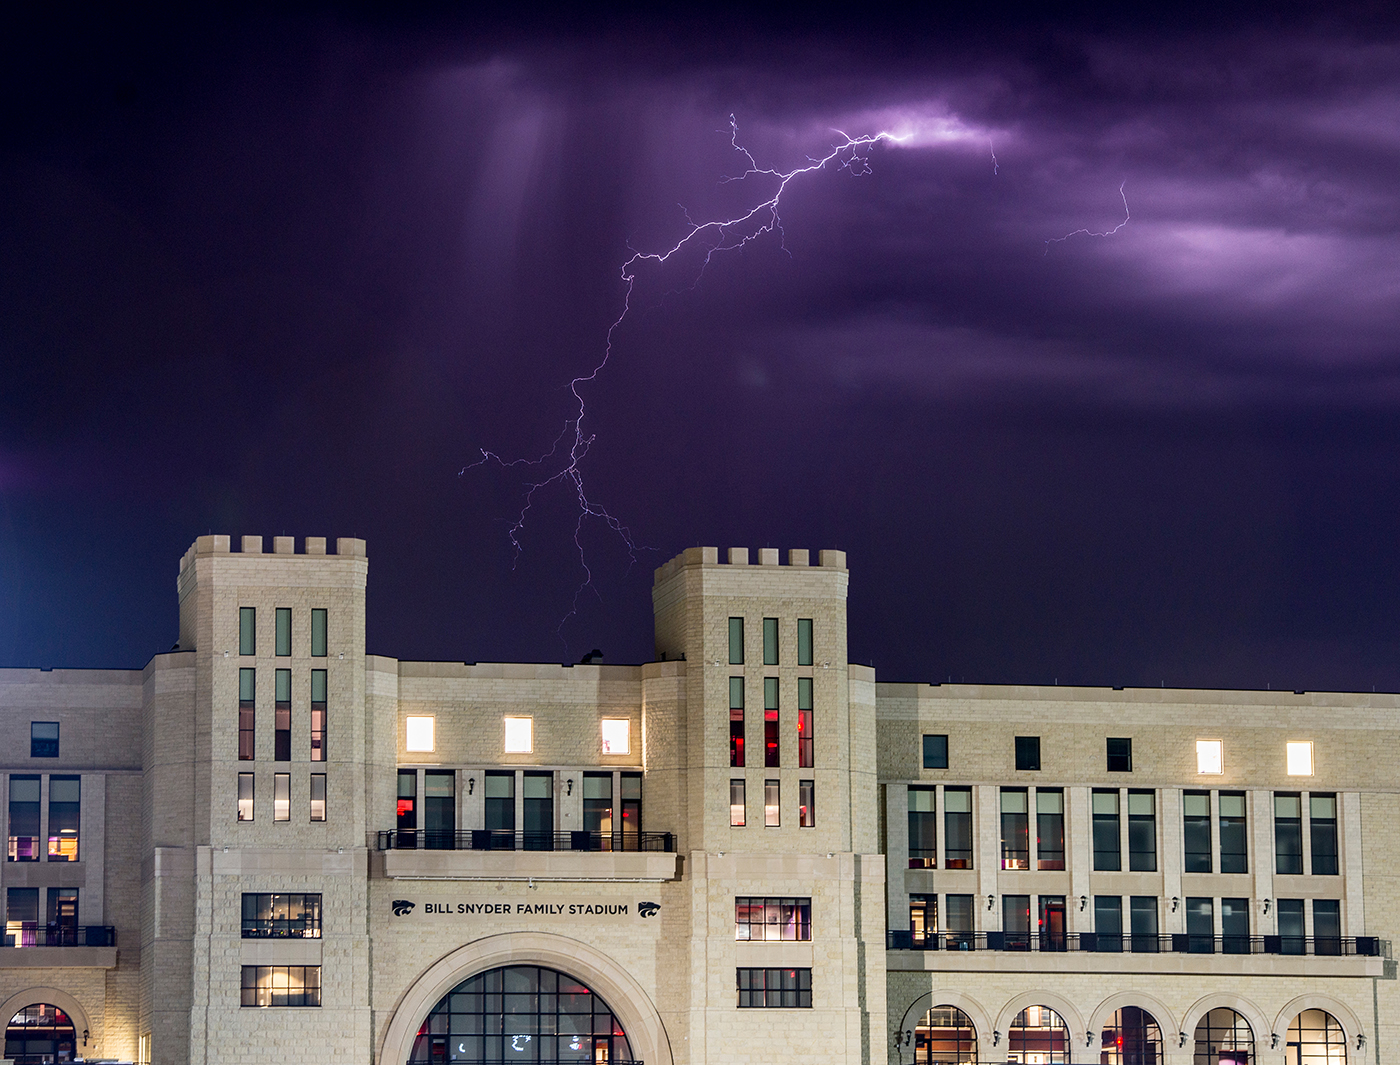 Lightning fills the sky behind the West Stadium Center of Bill Snyder Family Stadium early May 3, 2015.